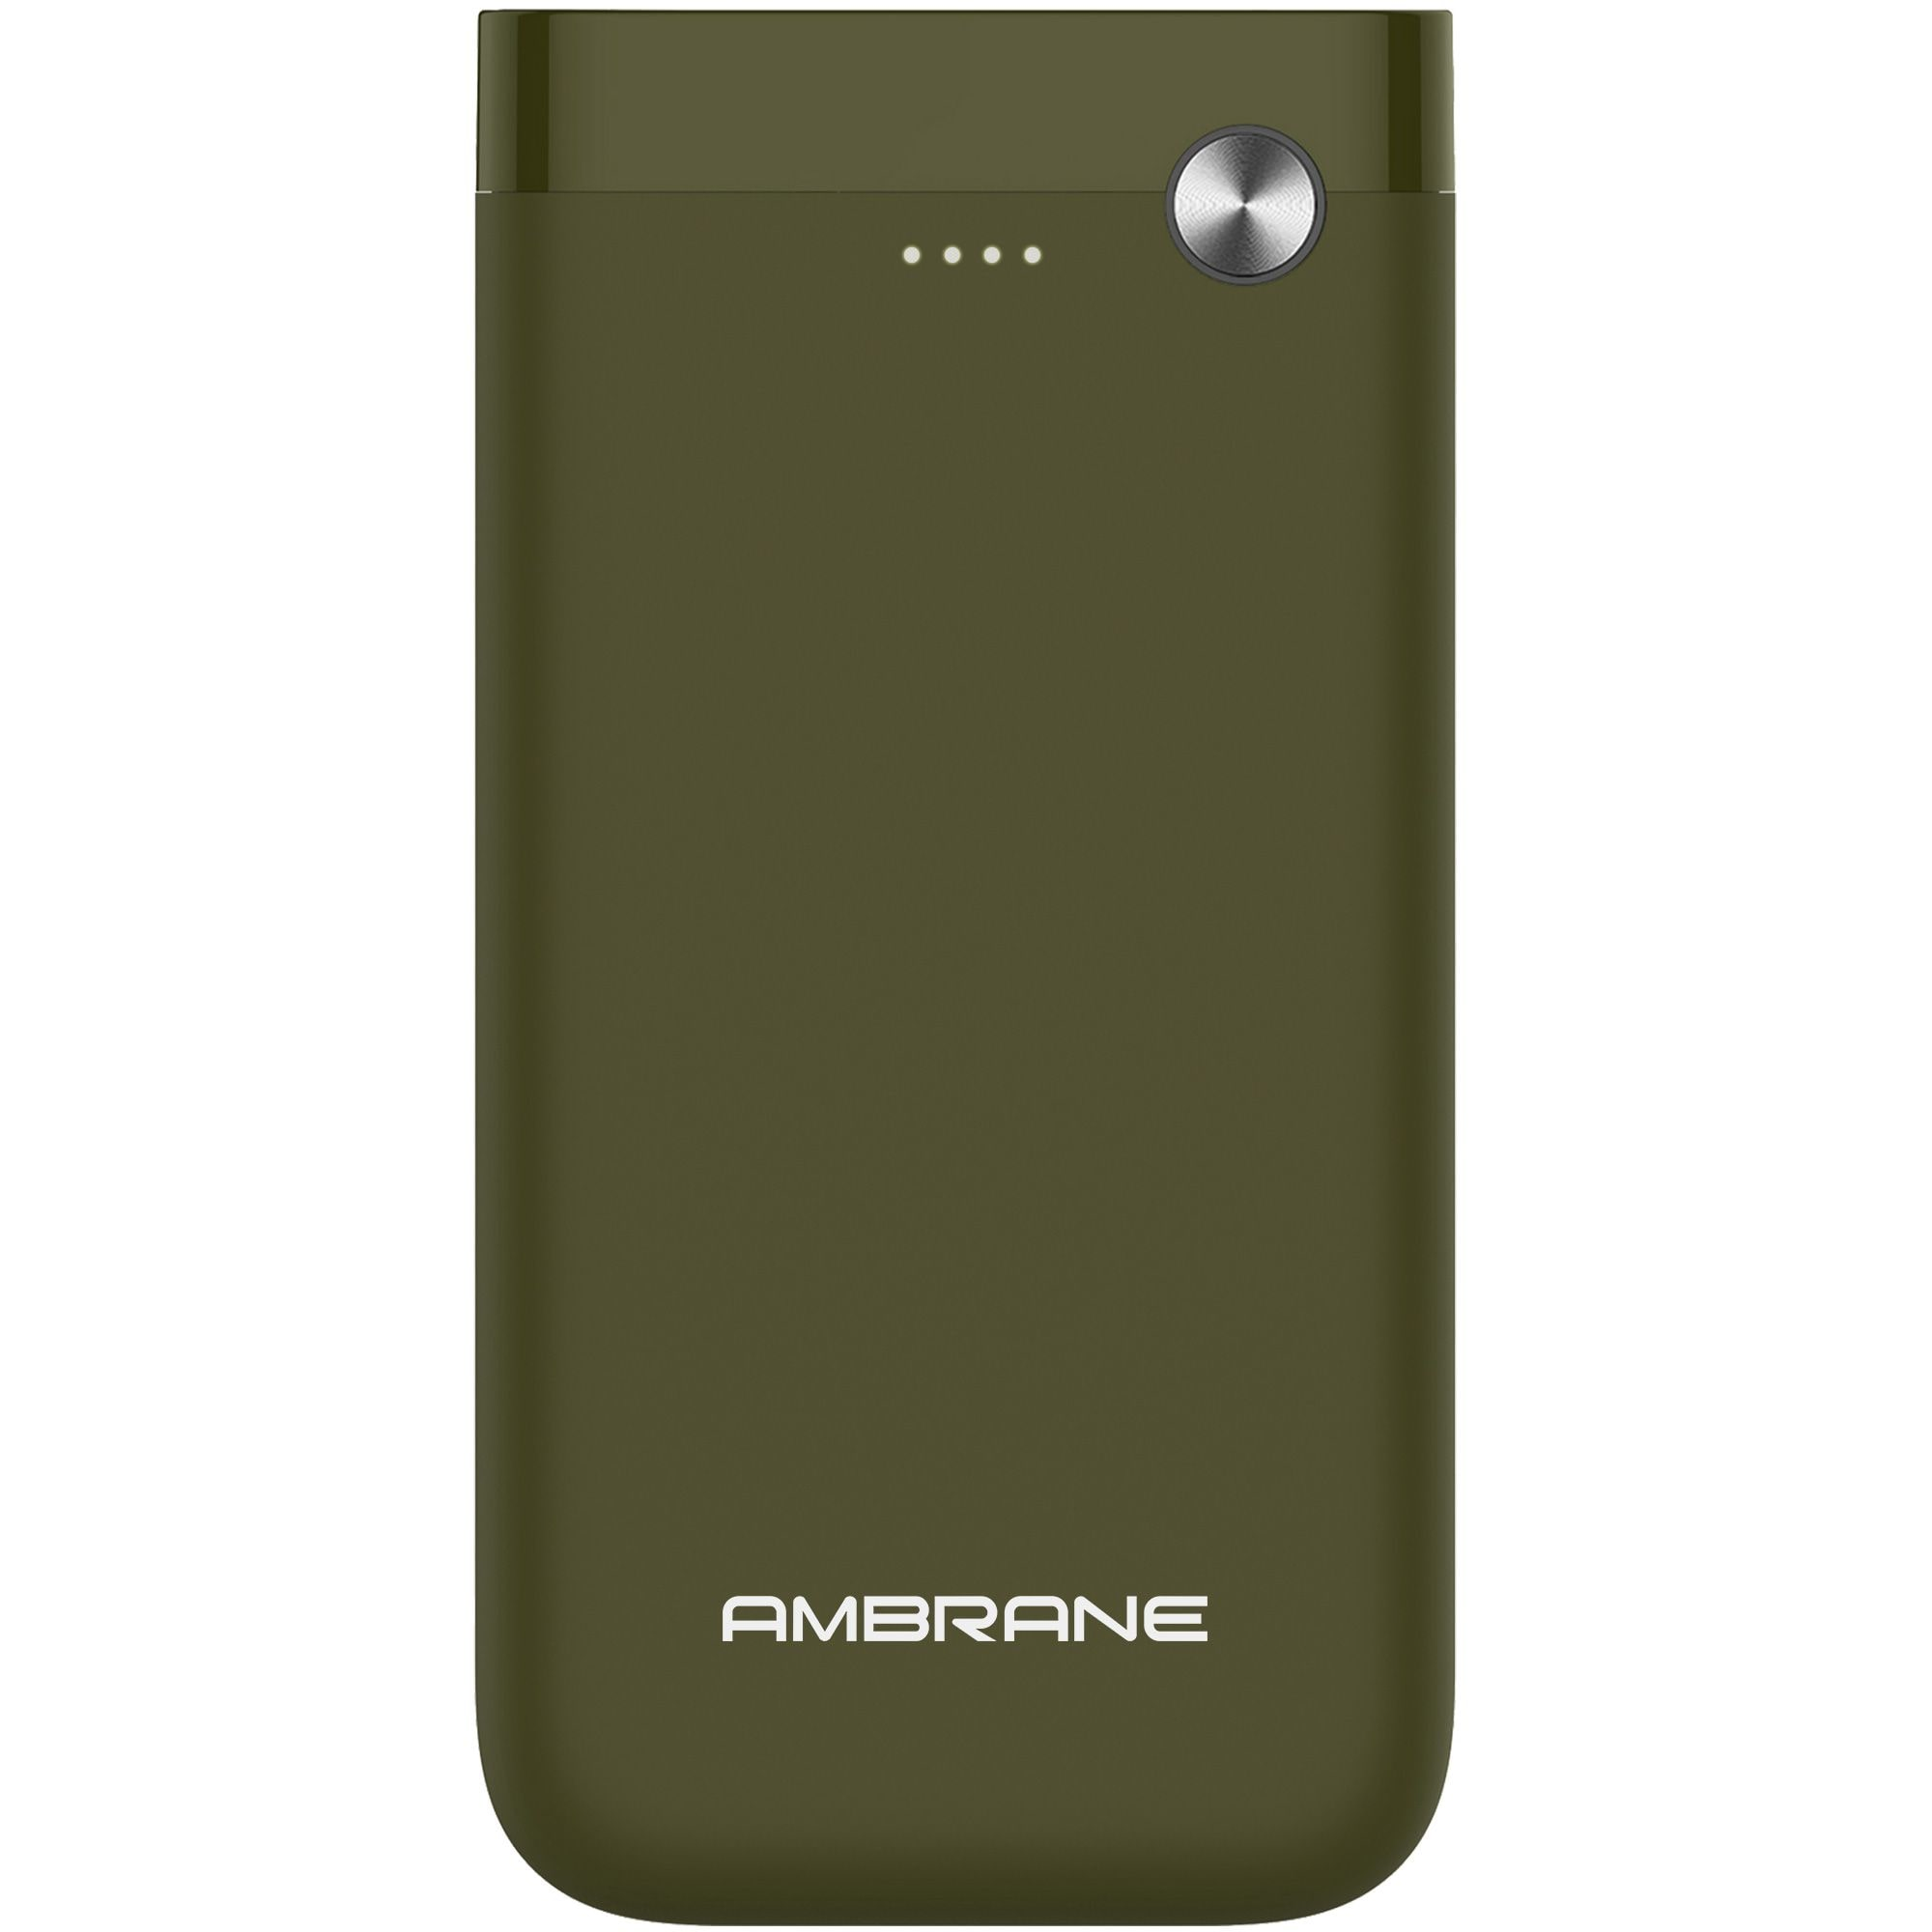 Ambrane PP-150 15000 mAh Portable Power Bank - Green